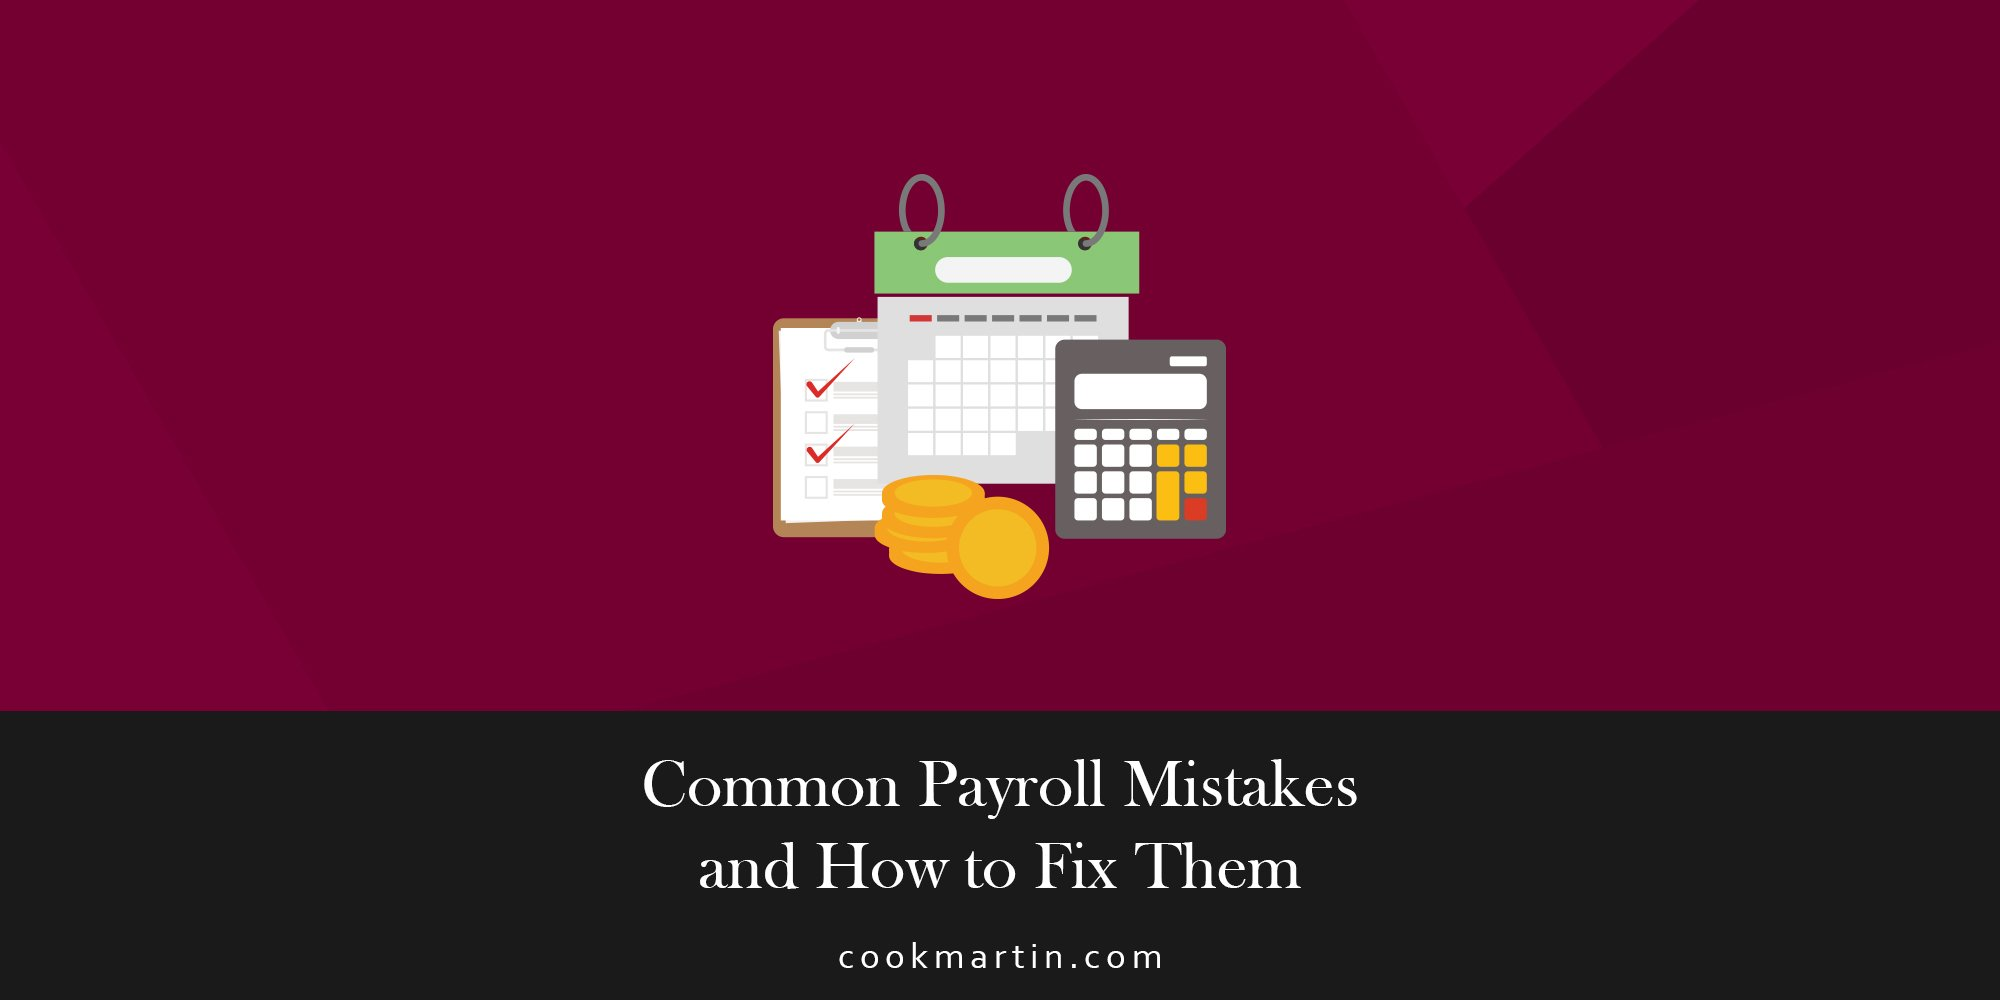 Common Payroll Mistakes and How to Fix Them